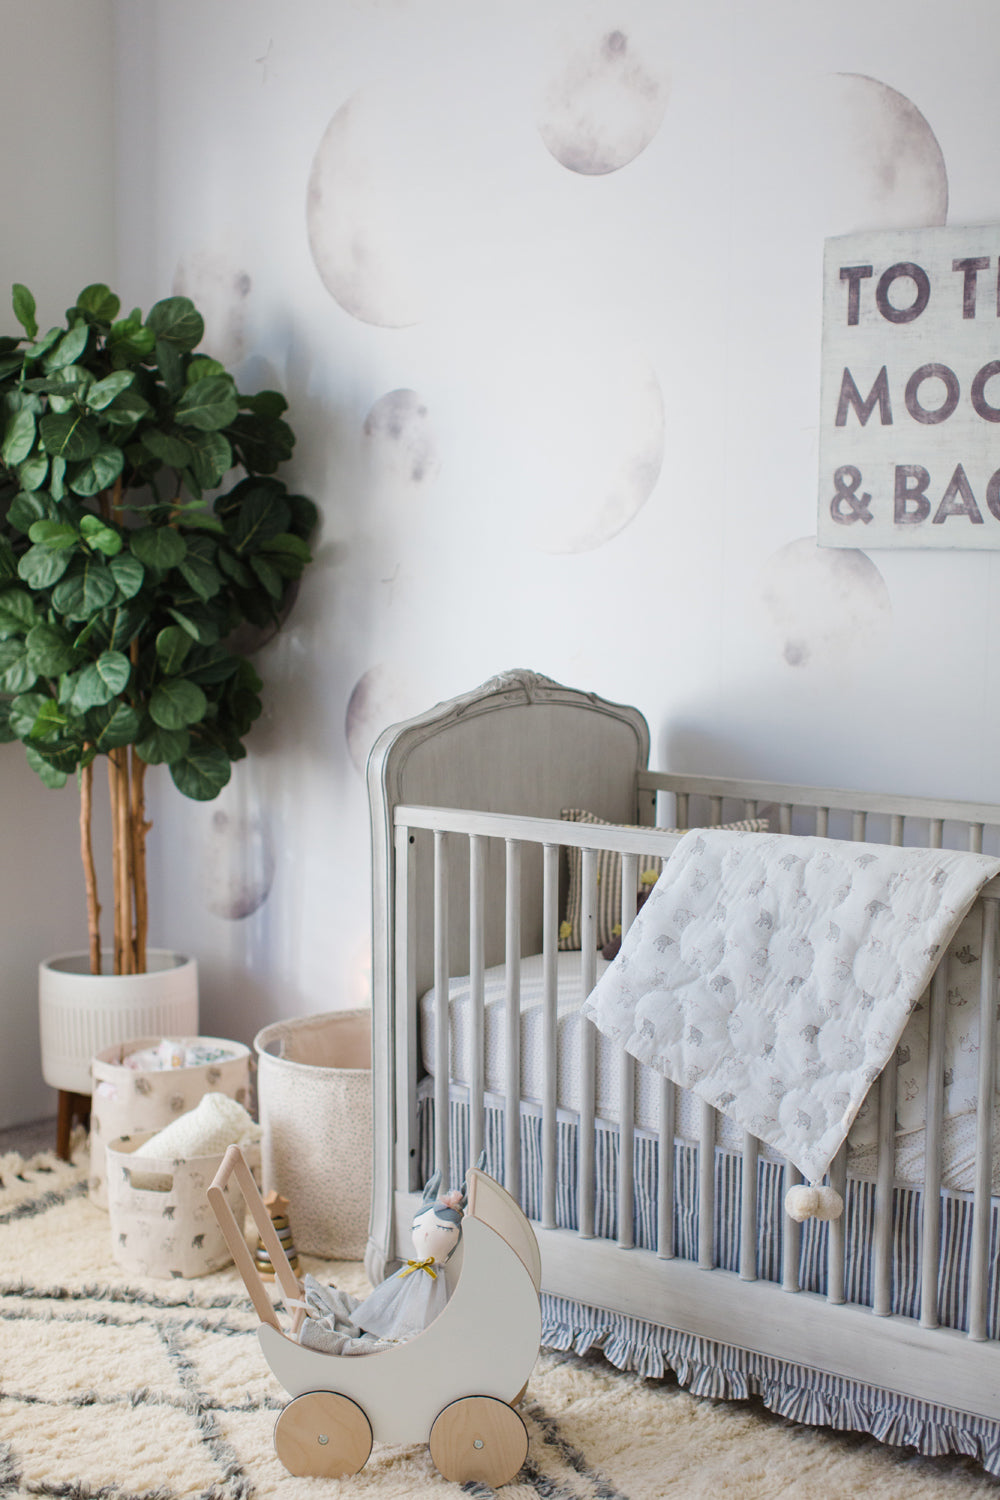 We're Over The Moon - Caitlin Lindquist's Nursery Style